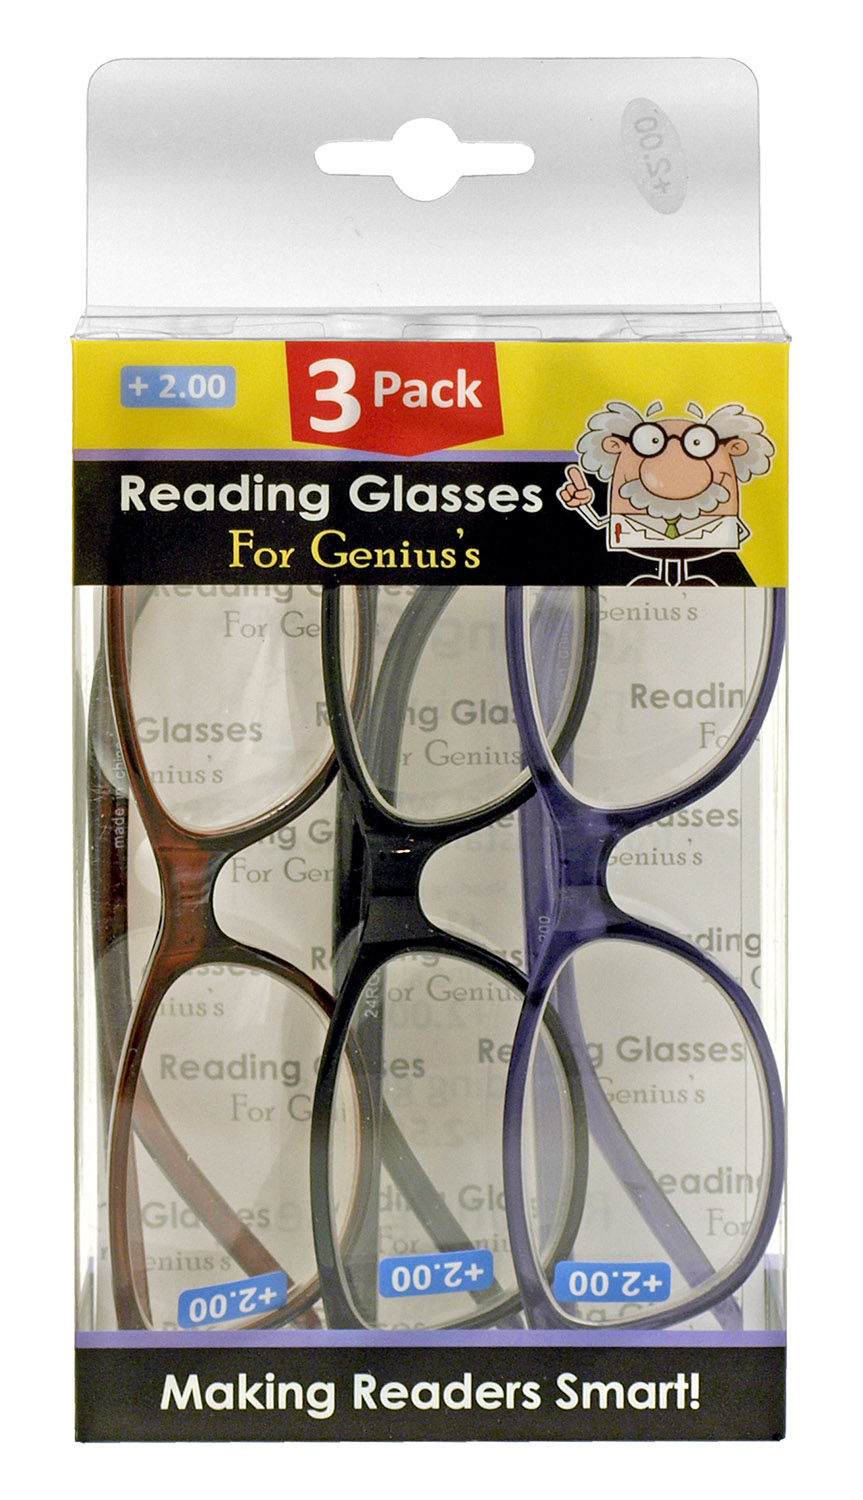 3ddb7c4c39a9 Wholesale Reading Glasses now available at Wholesale Central - Items ...